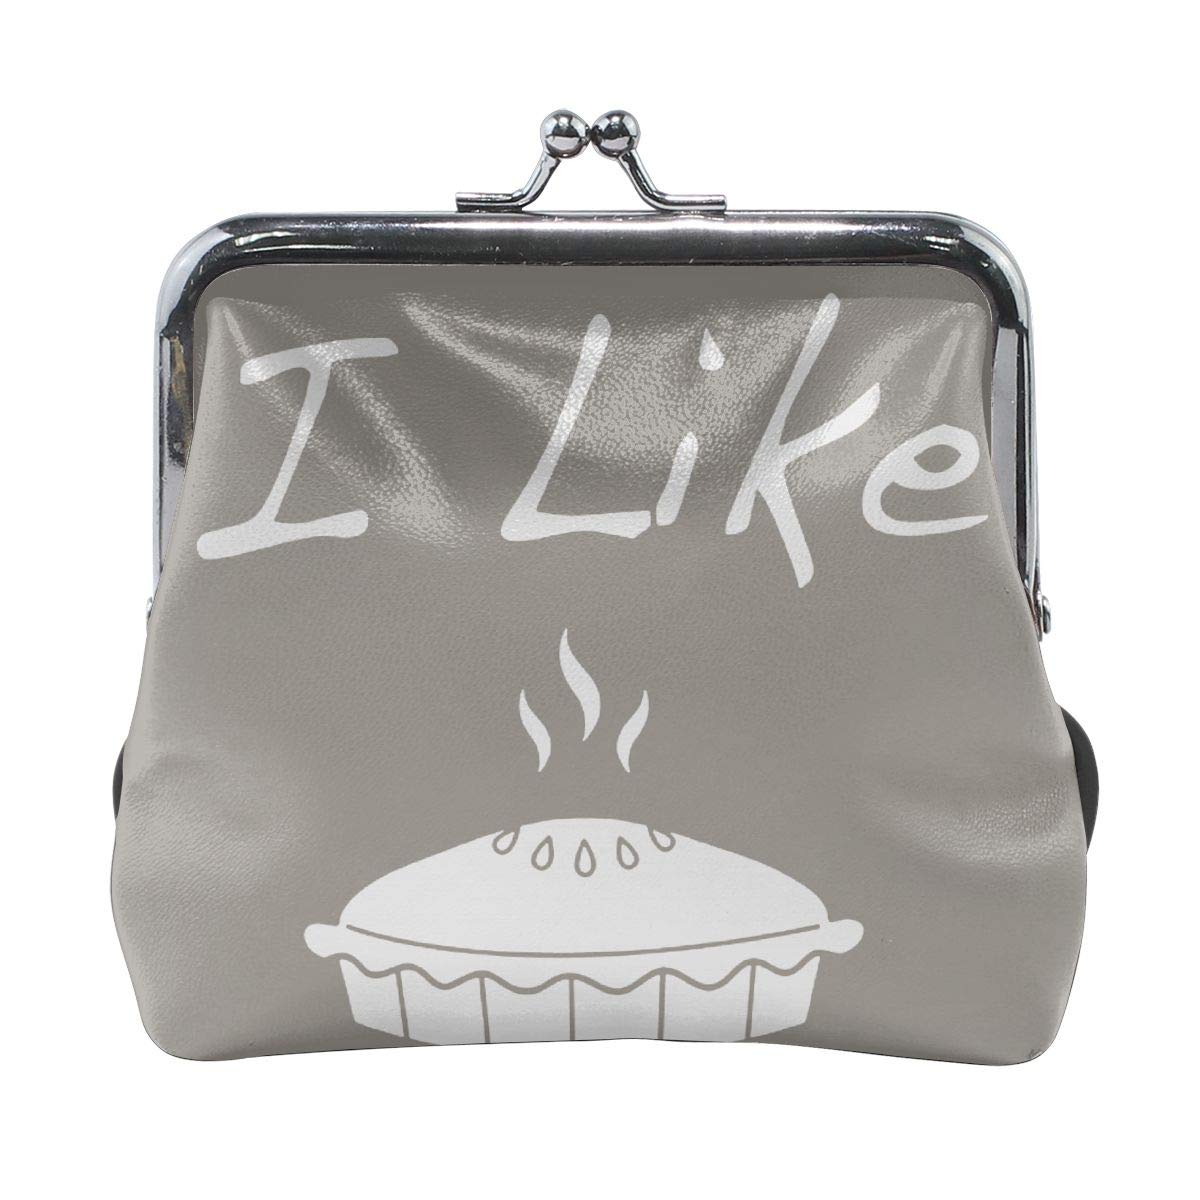 Exquisite I Like Pie Credit Cards Buckle Coin Purse For Womens